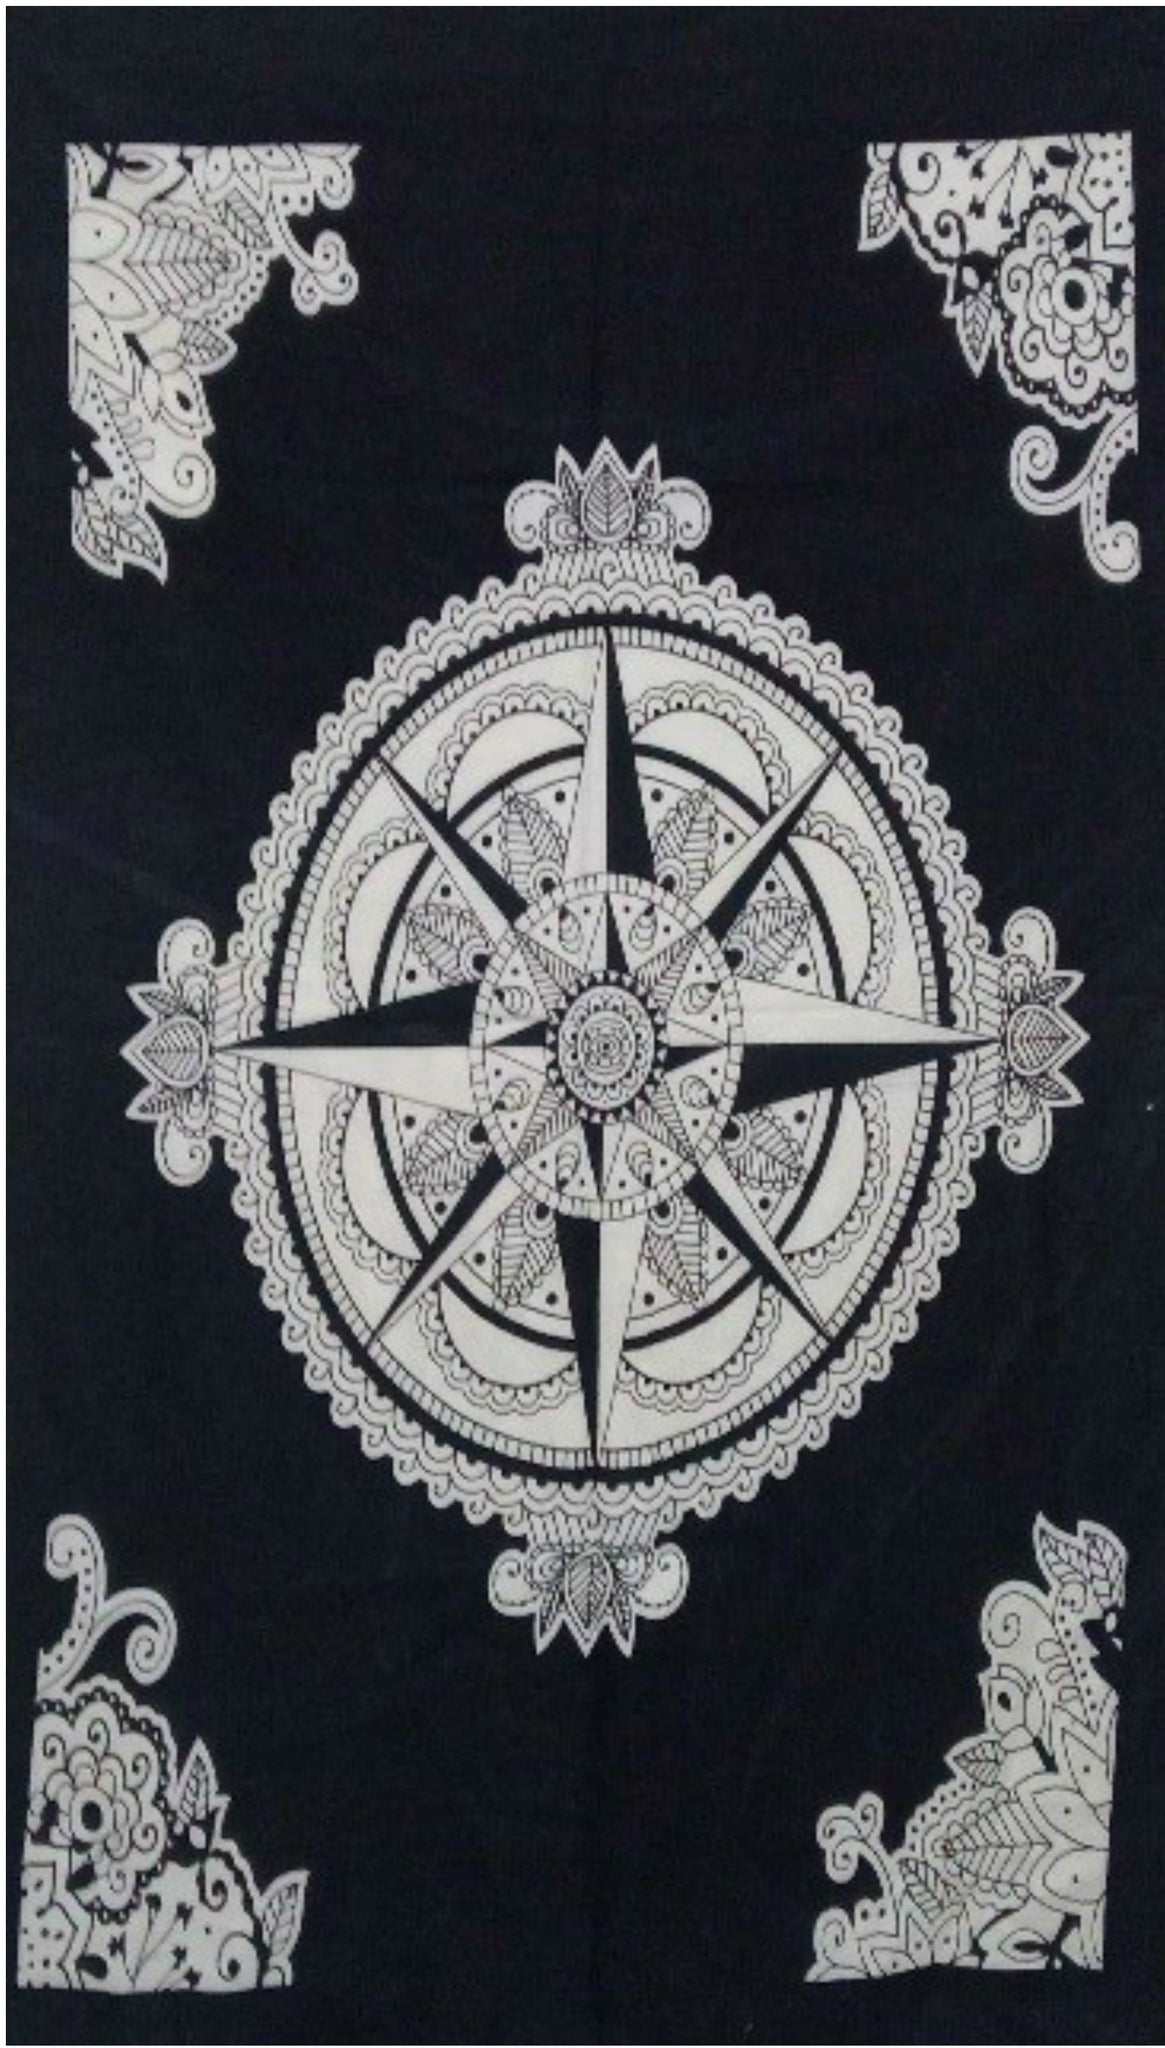 jaan-imports - Black and White Compass Poster Tapestry - Khoobsurat Gift Shop - Poster Tapestry